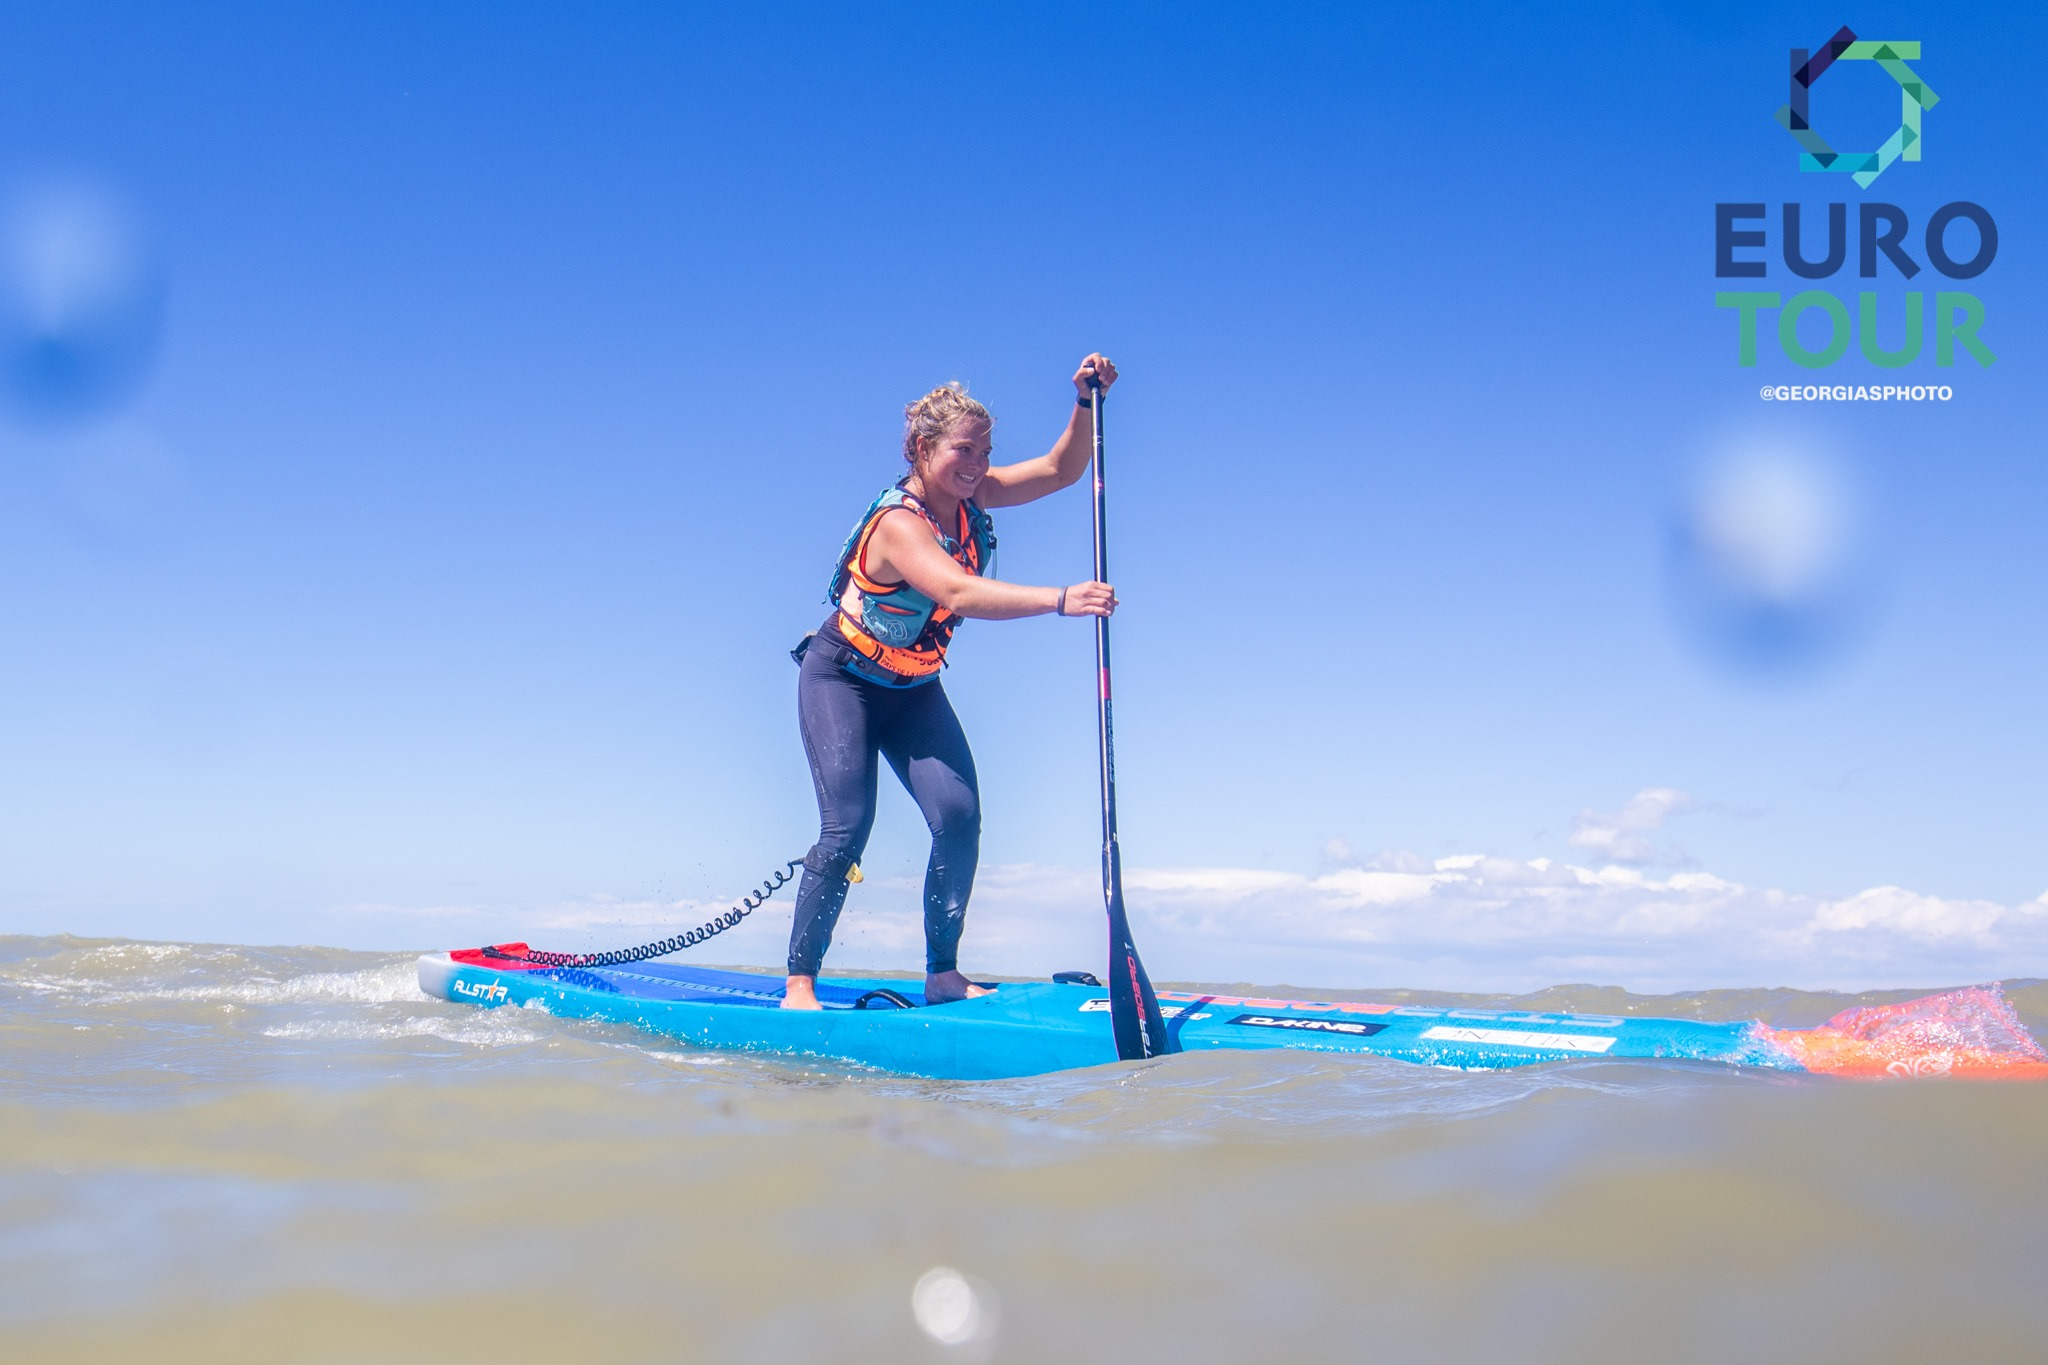 Starboard-SUP-Stand-Up-paddleboarding-Wylde-Surfs-to-Victory-at-2019-Vendée-Gliss-SUP-Race-PC-Georgia-Schofield-Donwwind-1